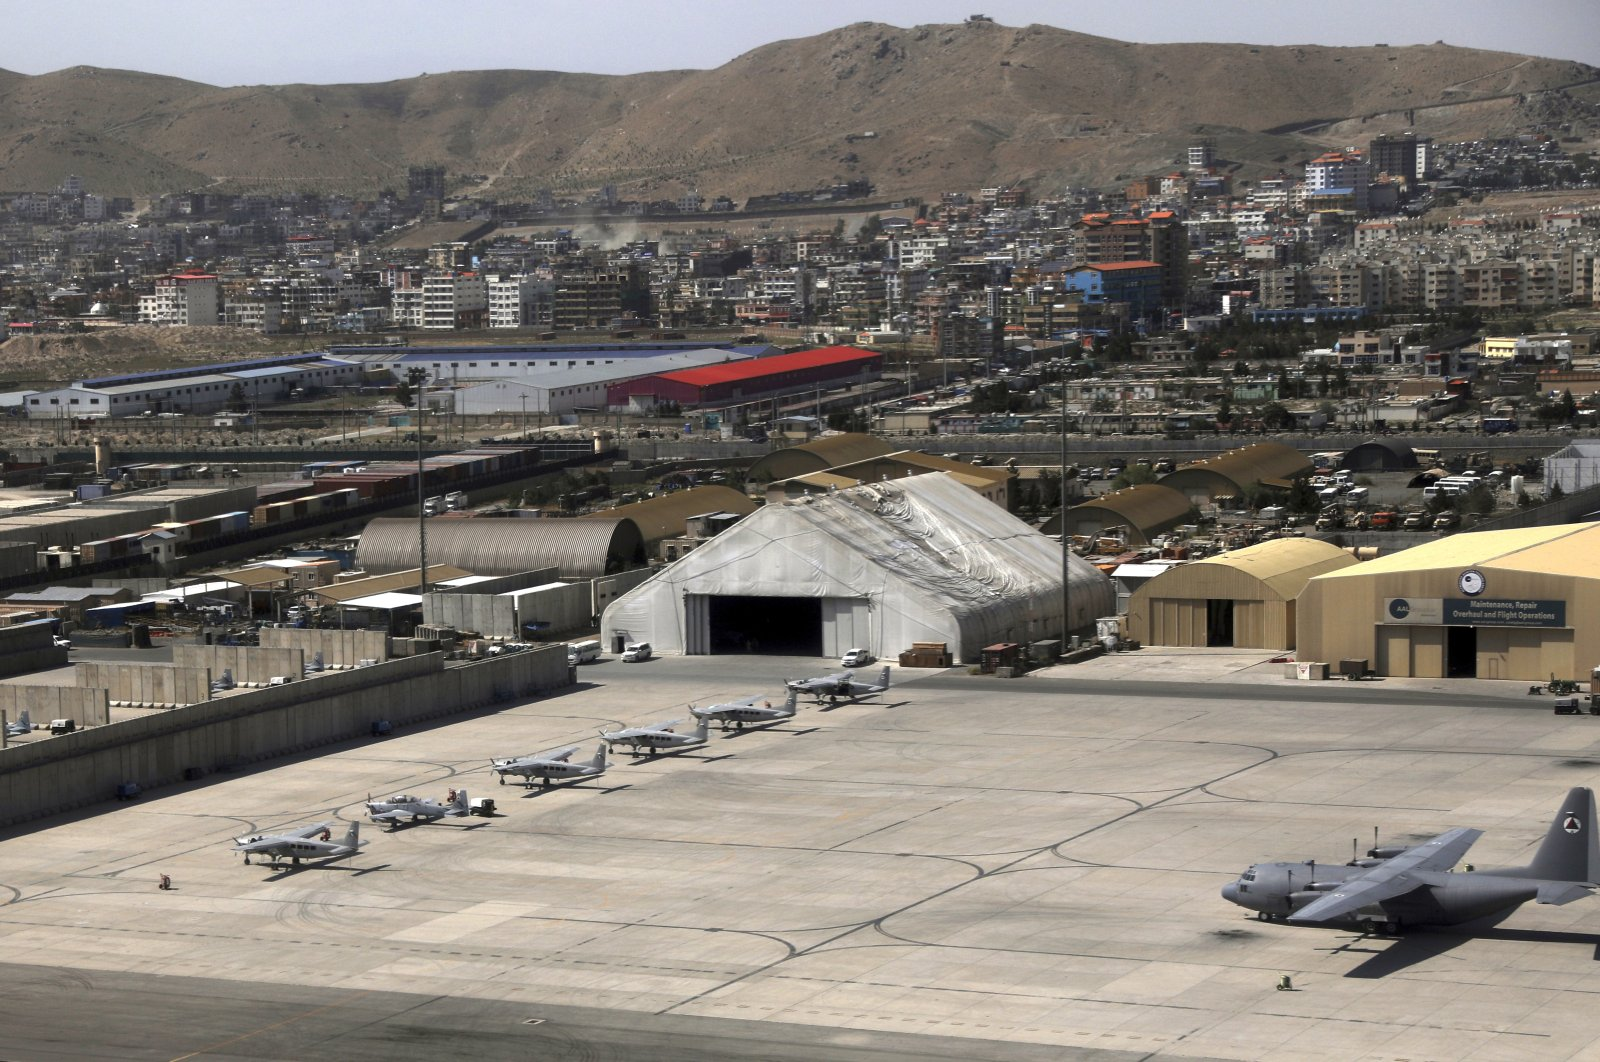 A side of Kabul Military Airport where AC 208 combat caravan aircraft are parked is seen from a commercial airplane, Afghanistan, July 7, 2021. (AP Photo)